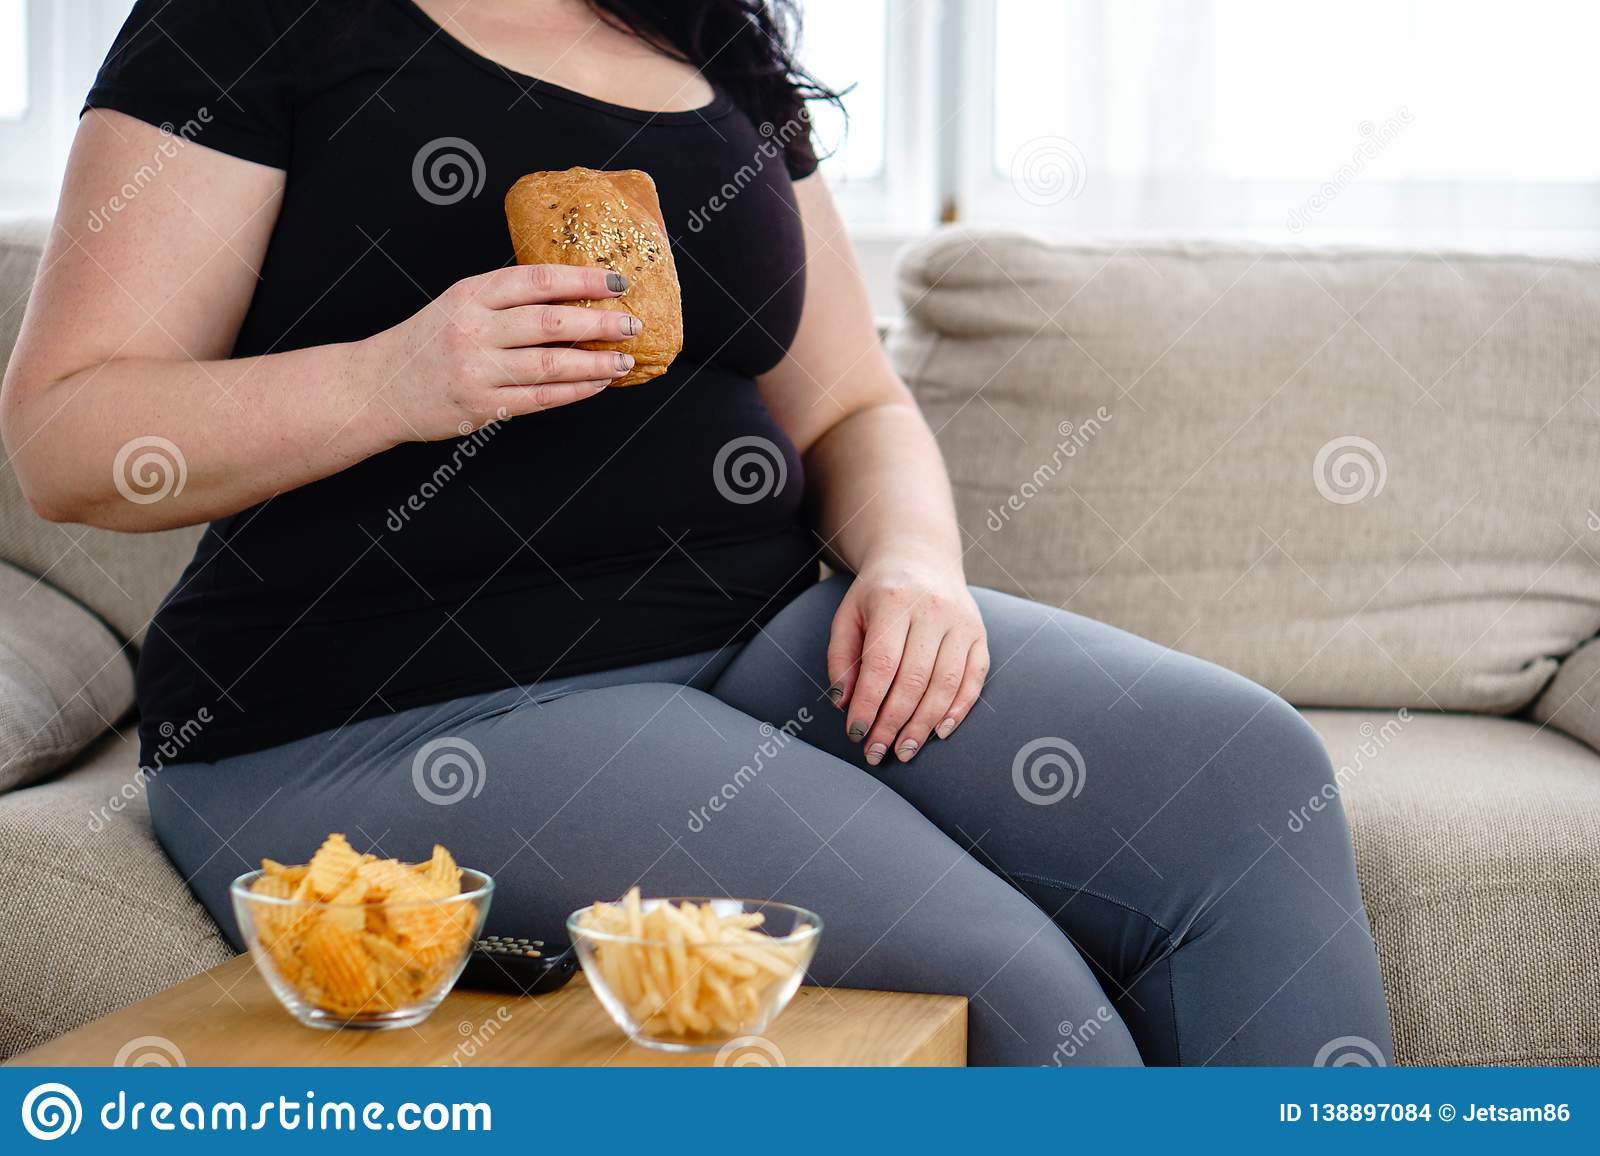 Serie Lack.Fat Woman Watching Series At Tv Eating Junk Food Stock Photo Image